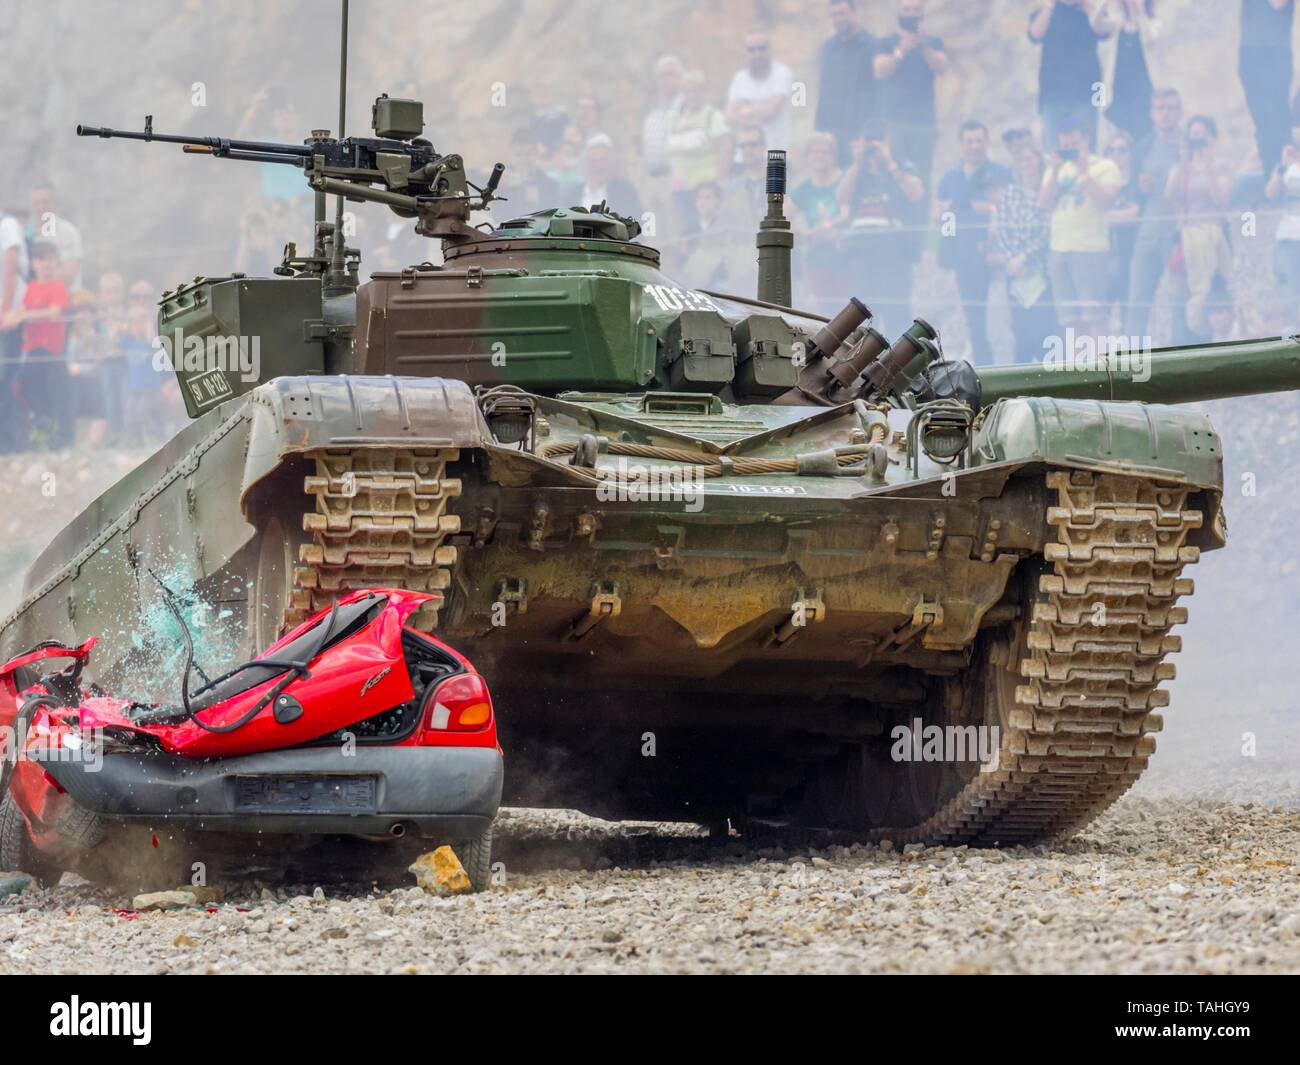 Tank drivin over hopeless car vehicle during public military demonstration in Pivka Slovenia M84 MBT driving towards camera front frontal view - Stock Image